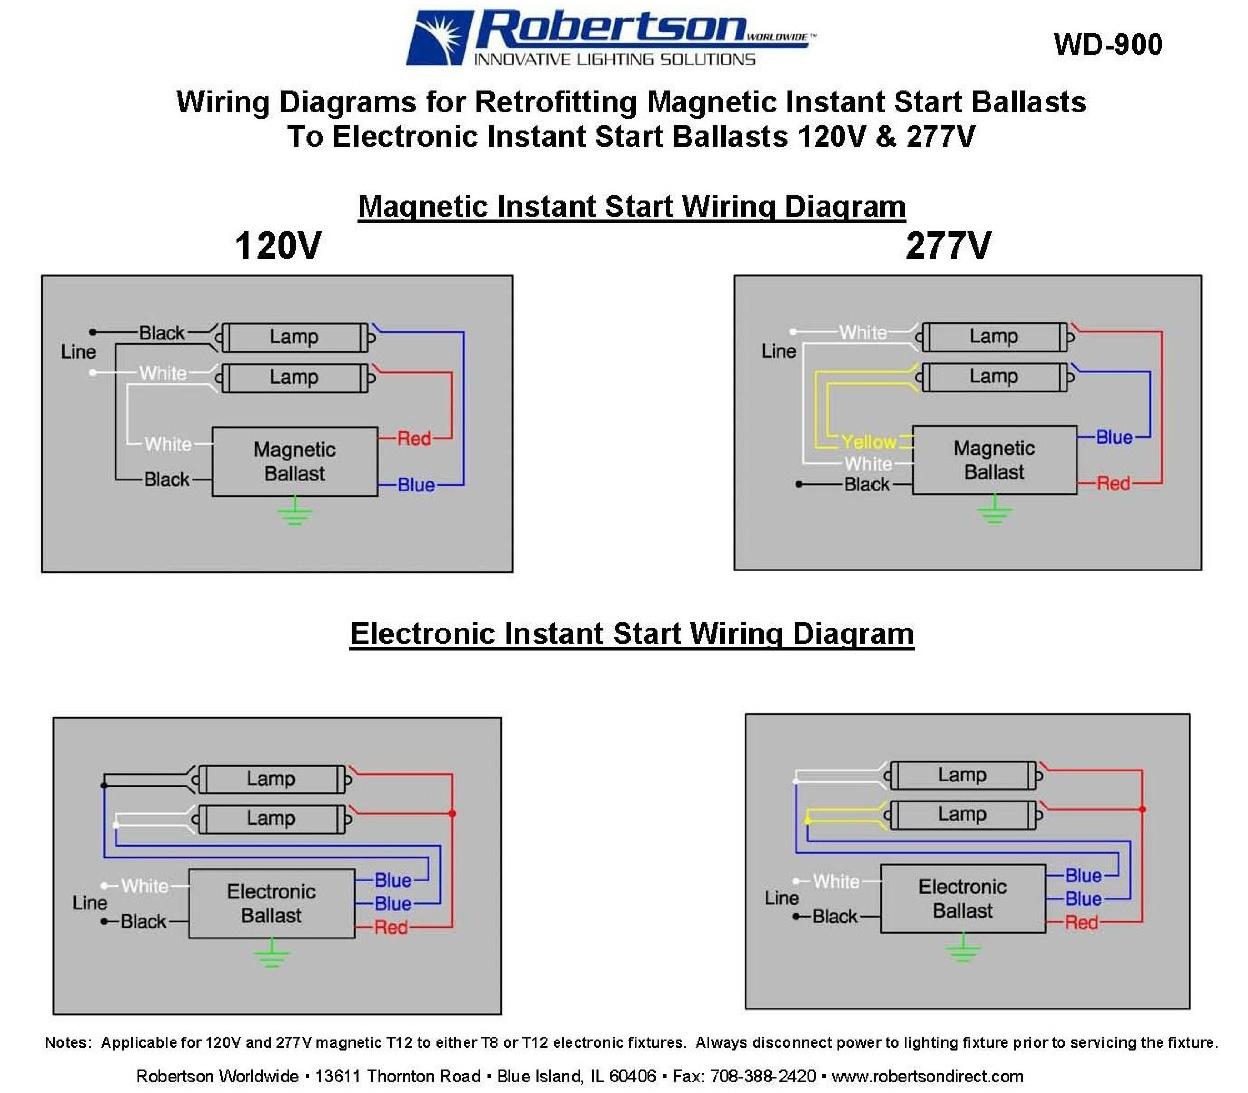 T96 Ballast 120 Volt Wiring Diagram | Wiring Liry on wiring diagram for f96t12, 4 wire ballast to 5 wire ballast, wiring diagram for electronic ballast, wiring diagram for emergency ballast, wiring diagram for sign ballast,